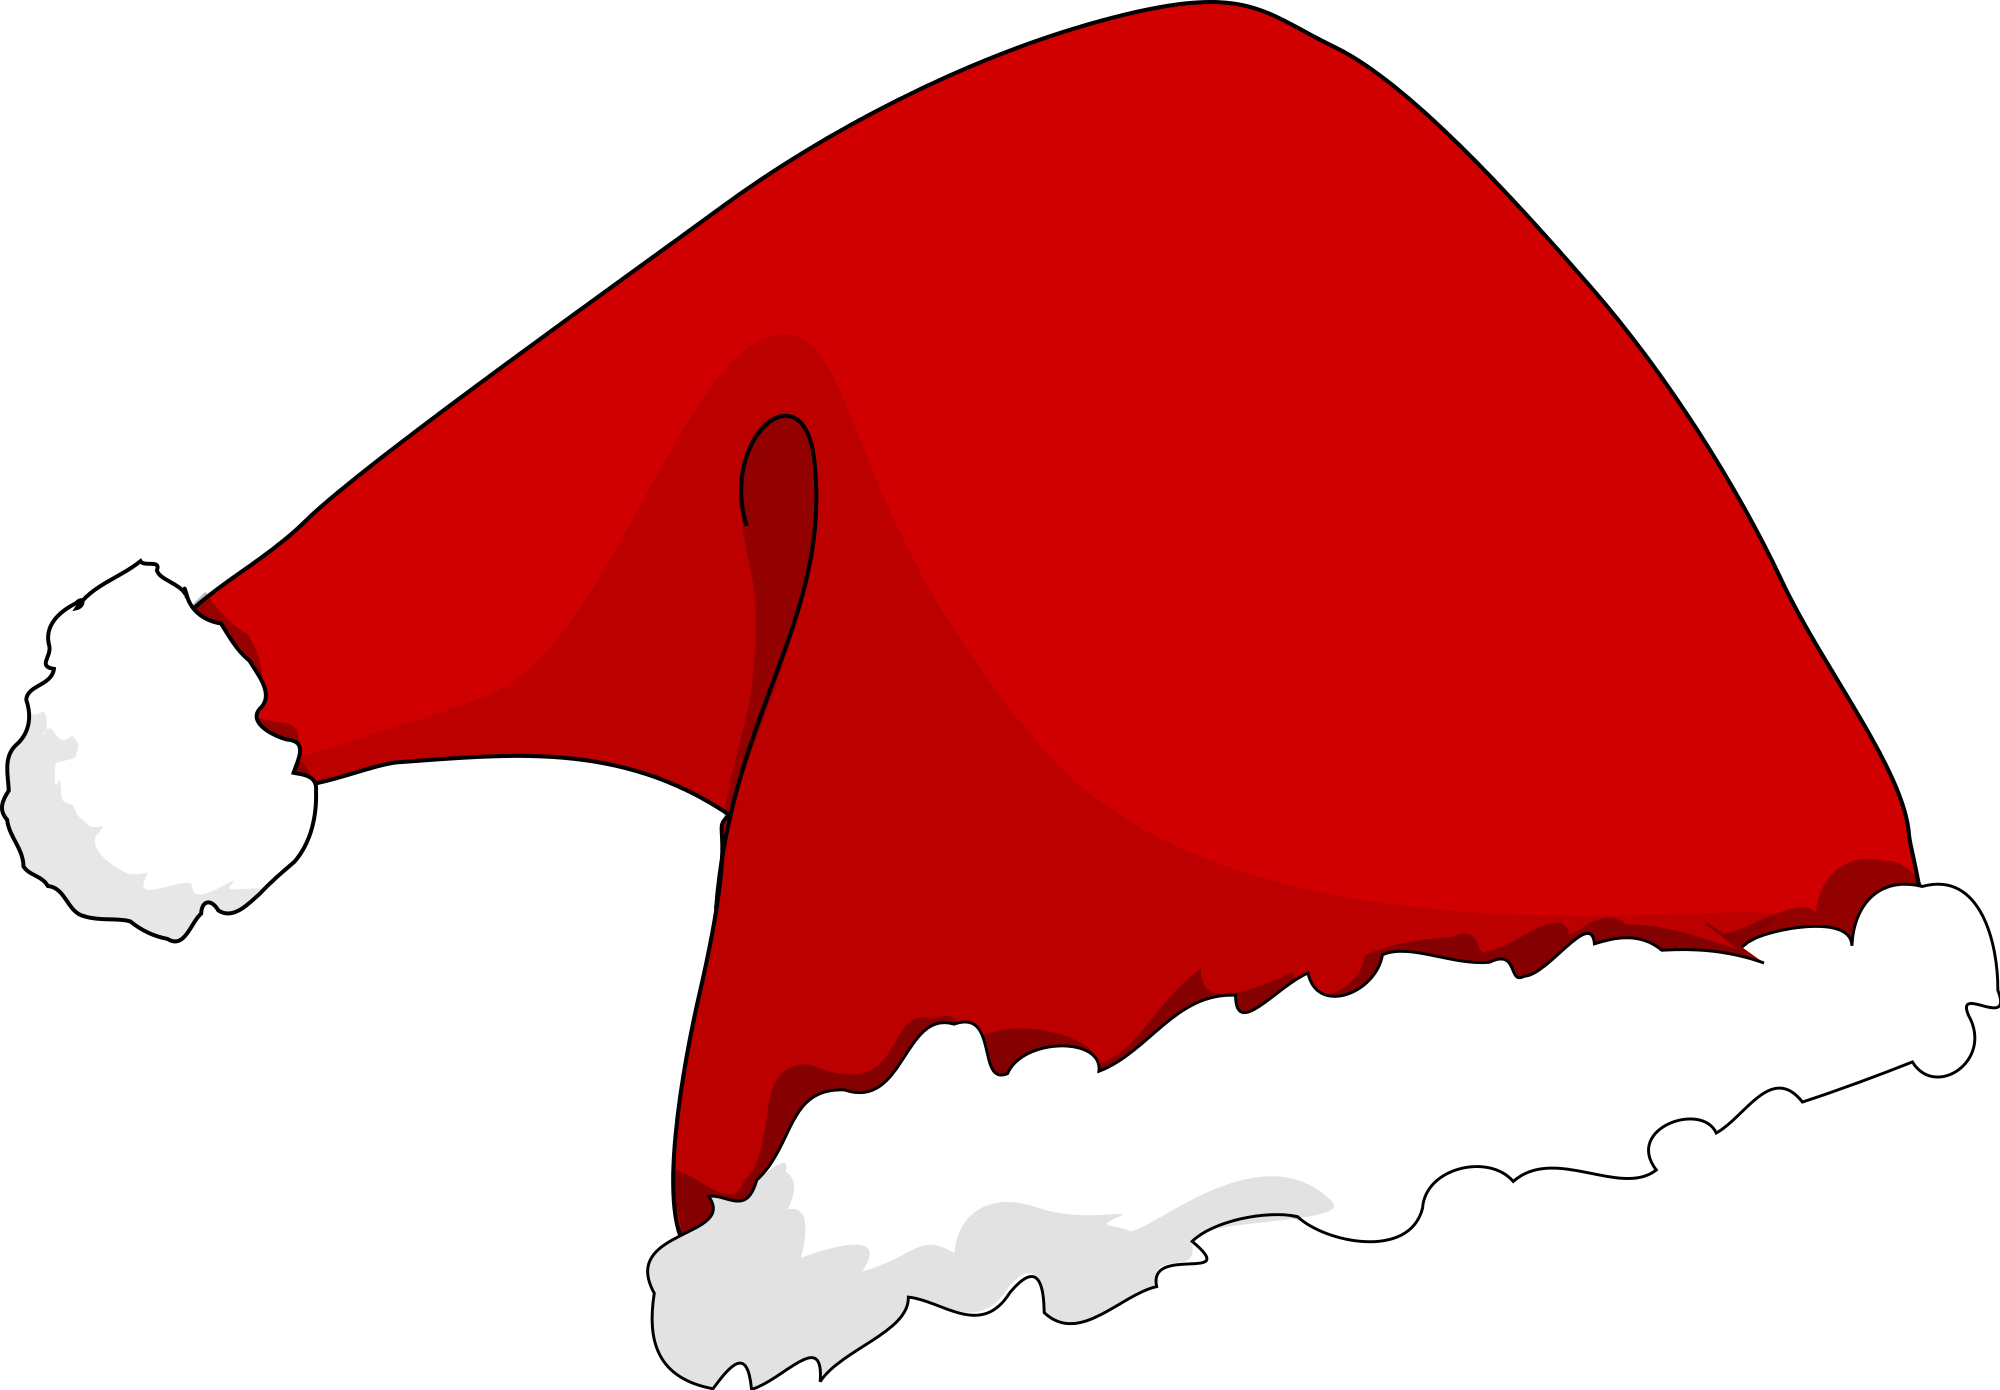 https://commons.wikimedia.org/wiki/File:Santa_hat.svg